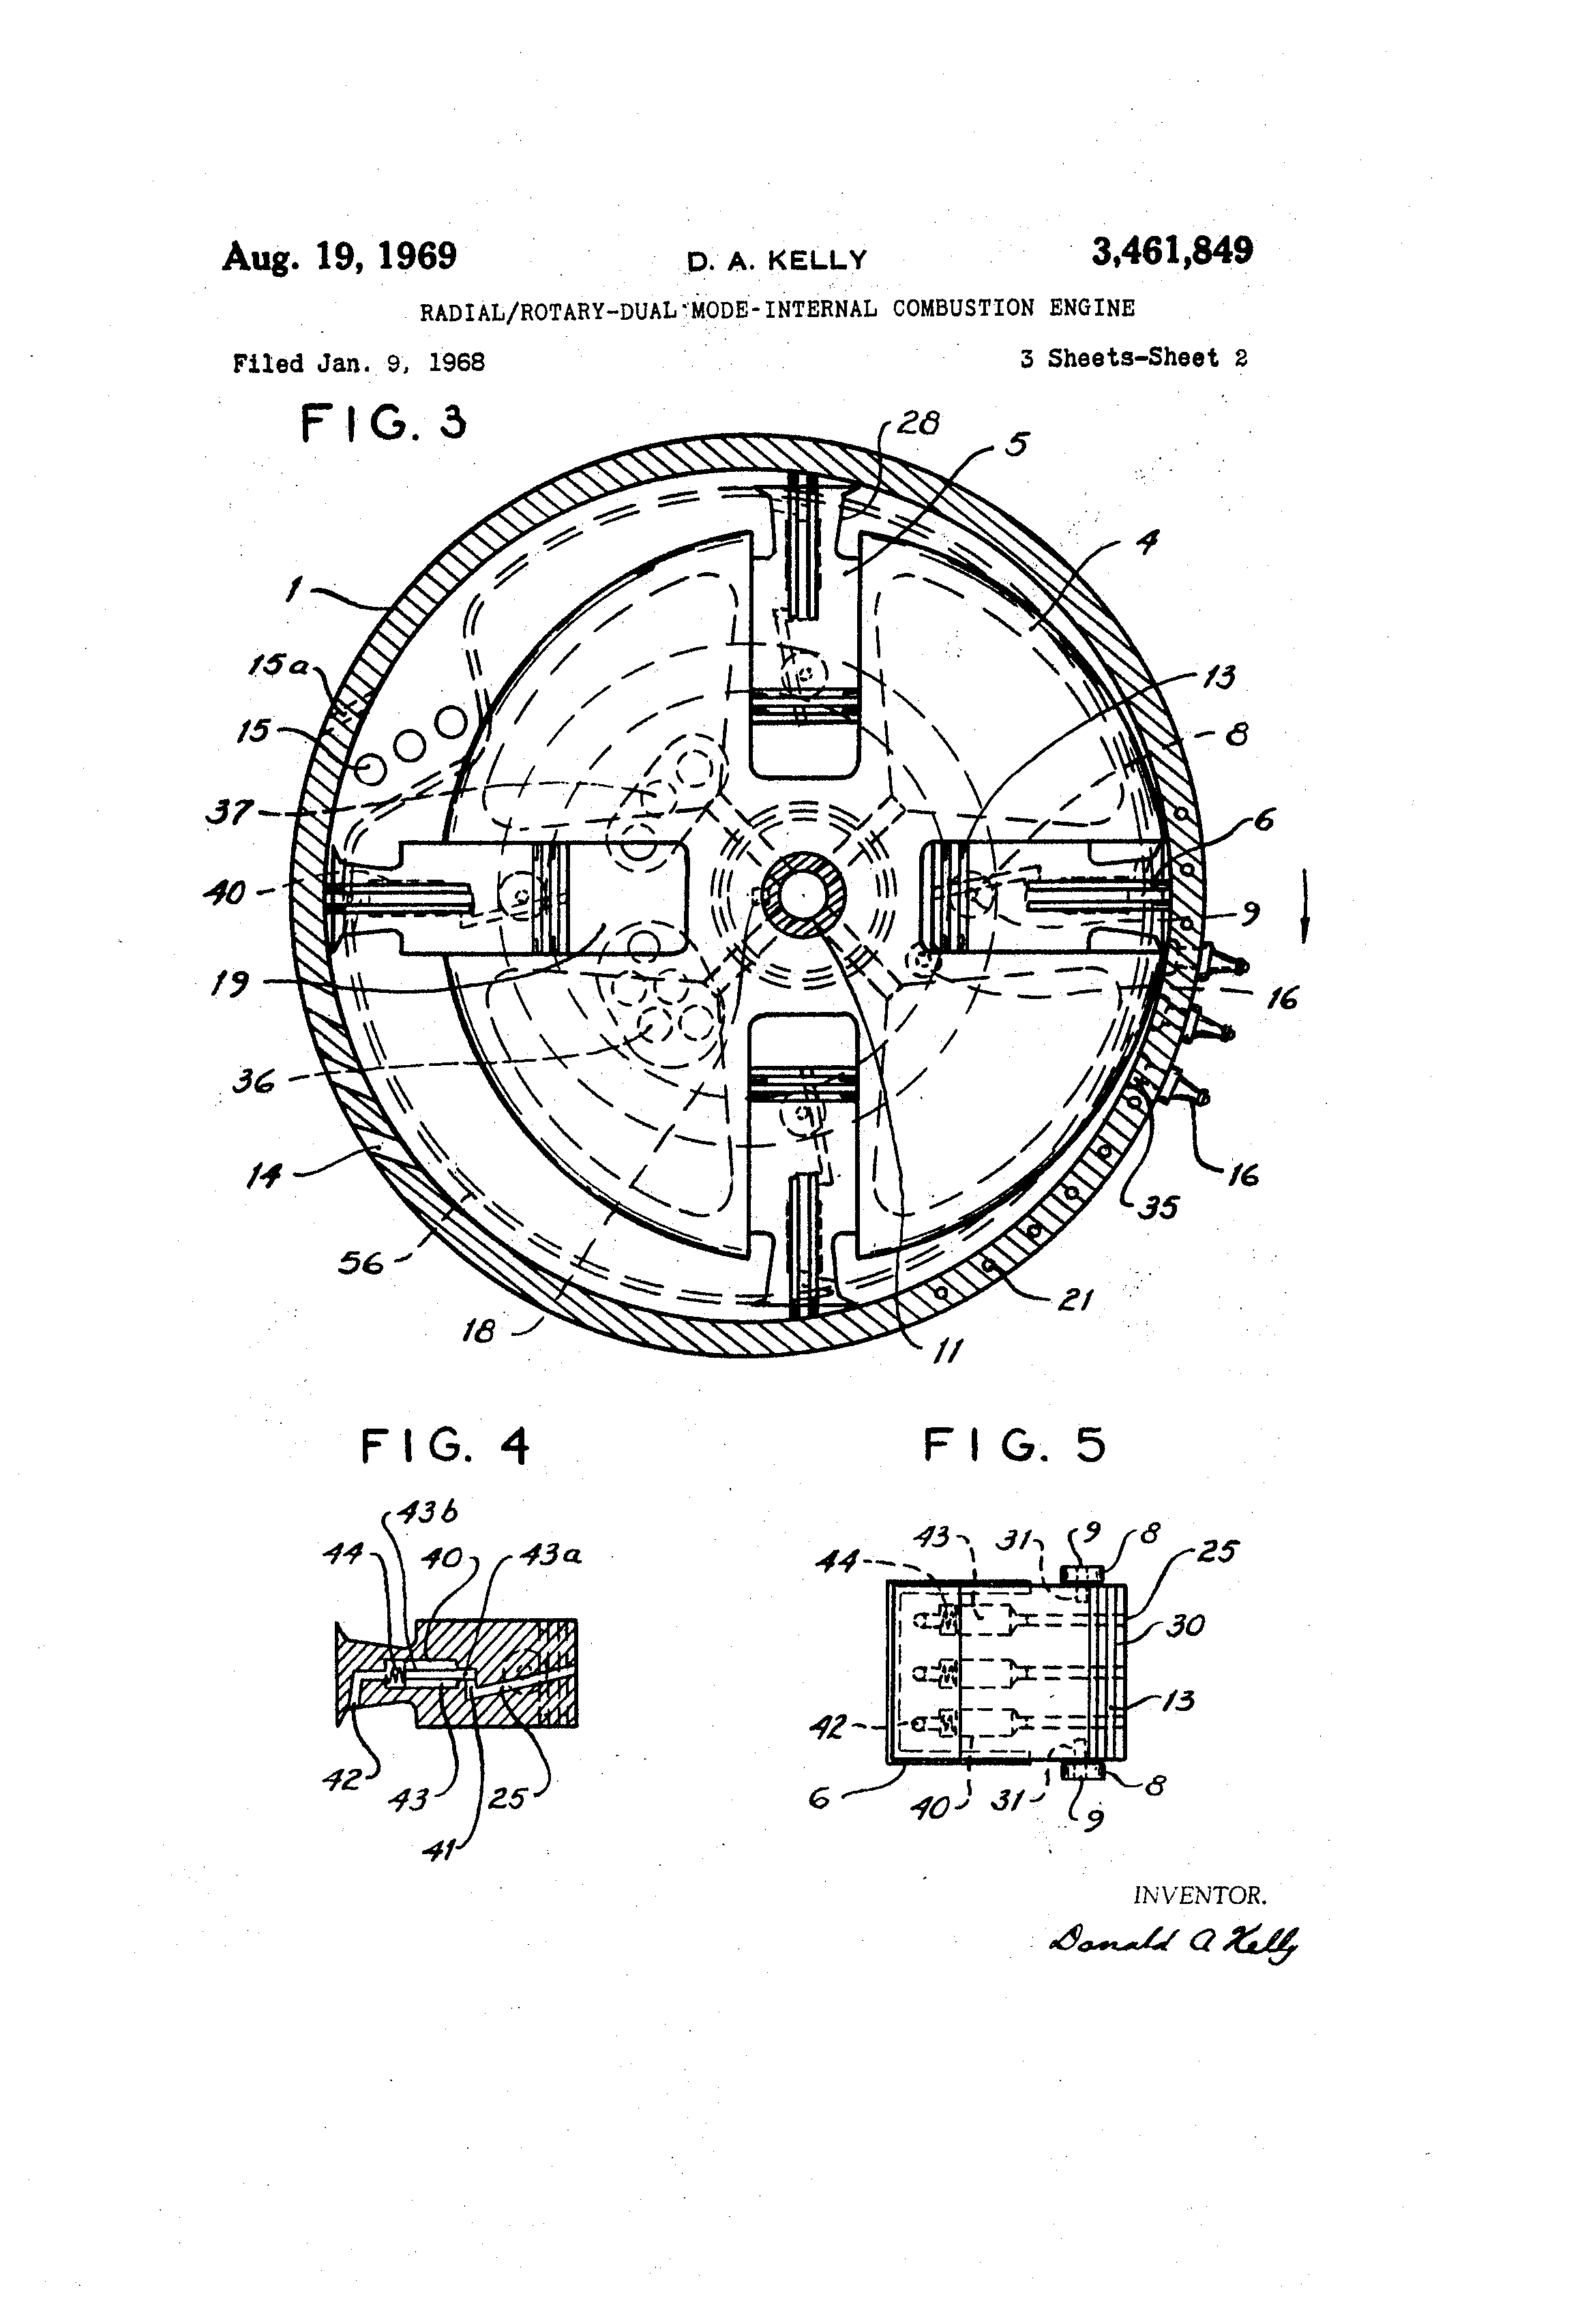 patent us3461849 radial rotary dual mode internal bustion Internal Combustion Engine Diesel patent drawing